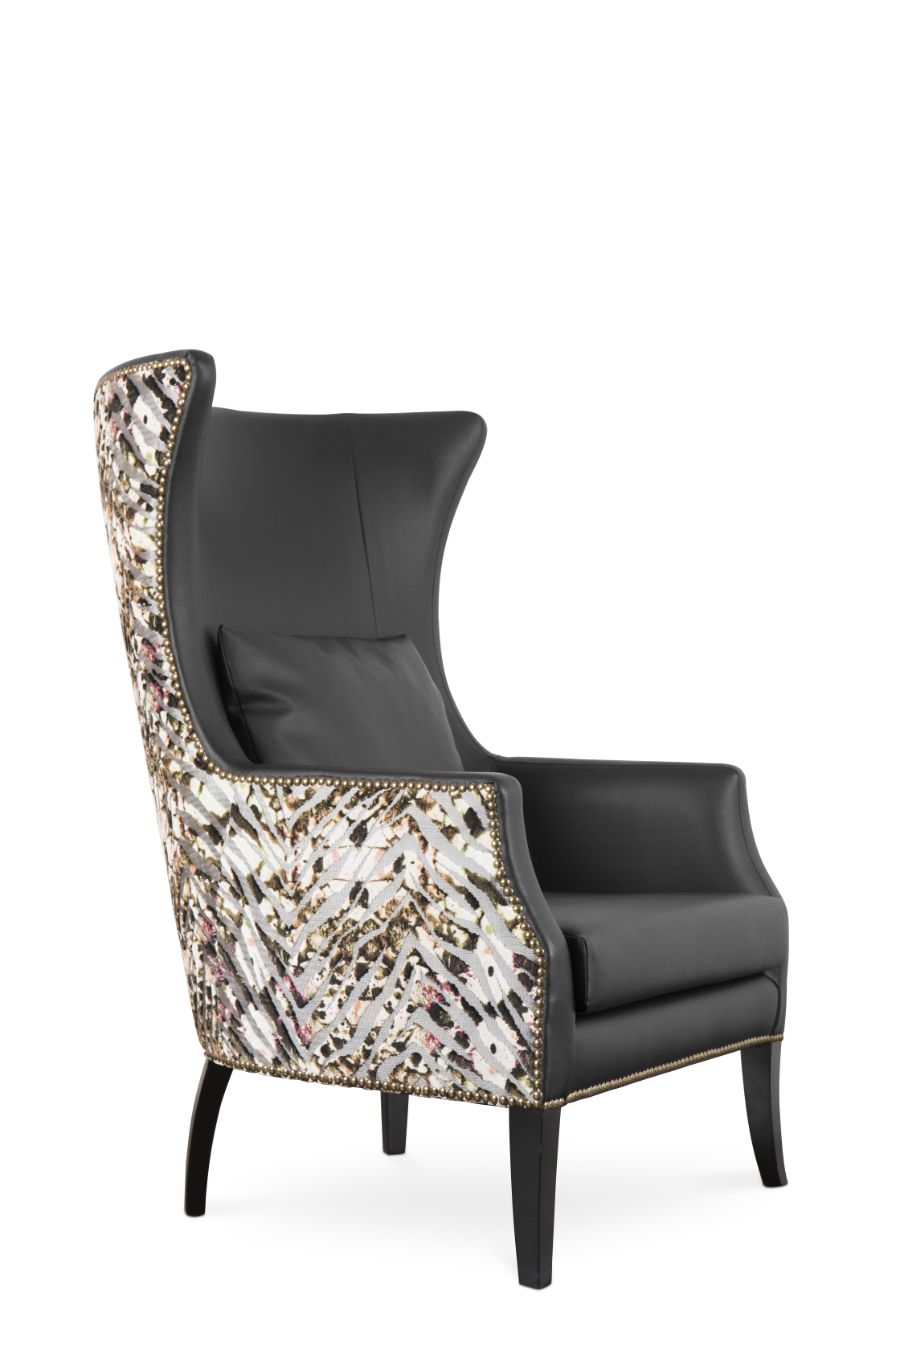 Modern Home Office Chairs: Comfort, Elegance and Practicability modern home office chairs Modern Home Office Chairs: Comfort, Elegance and Practicability Modern Home Office Chairs Comfort Elegance and Practicability 16